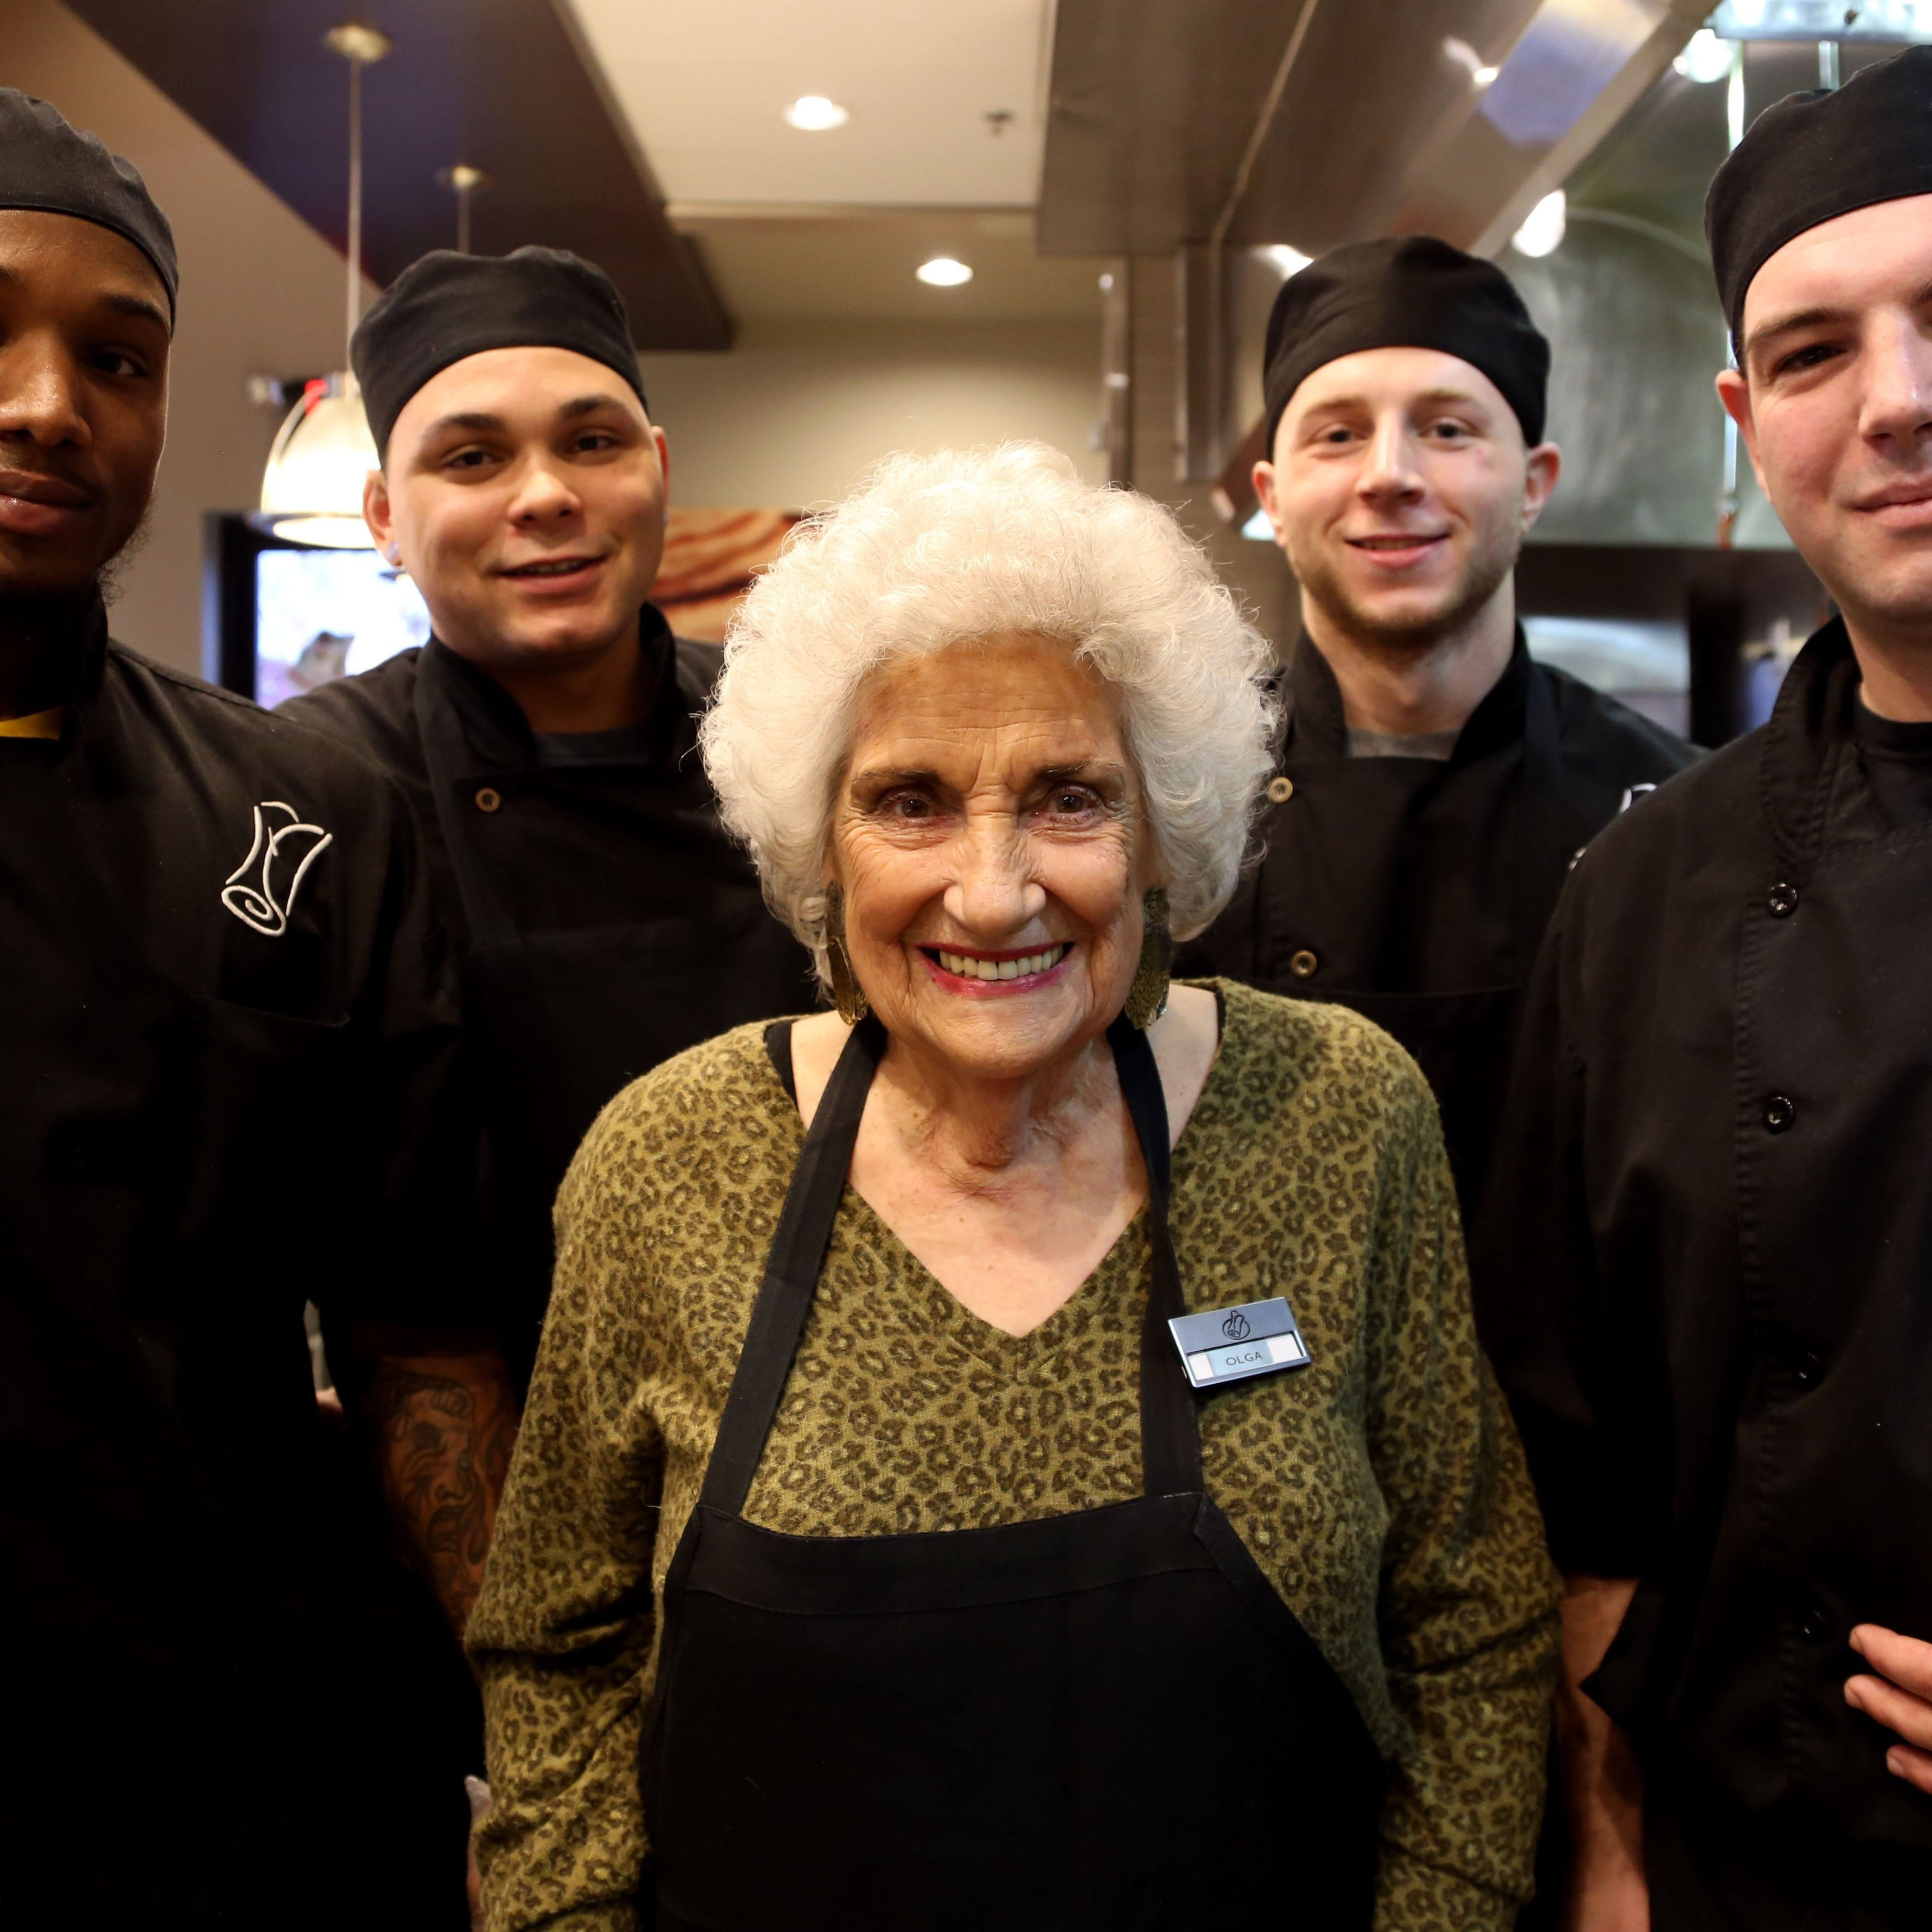 Olga Loizon, center,  is the founder of the restaurant chain Olga's. Here she poses with, left to right: culinary specialists William Claybrooks, Davon Weatherholt, Tyler Canyock, and Mattew Maule on Thurs., December 5, 2013.